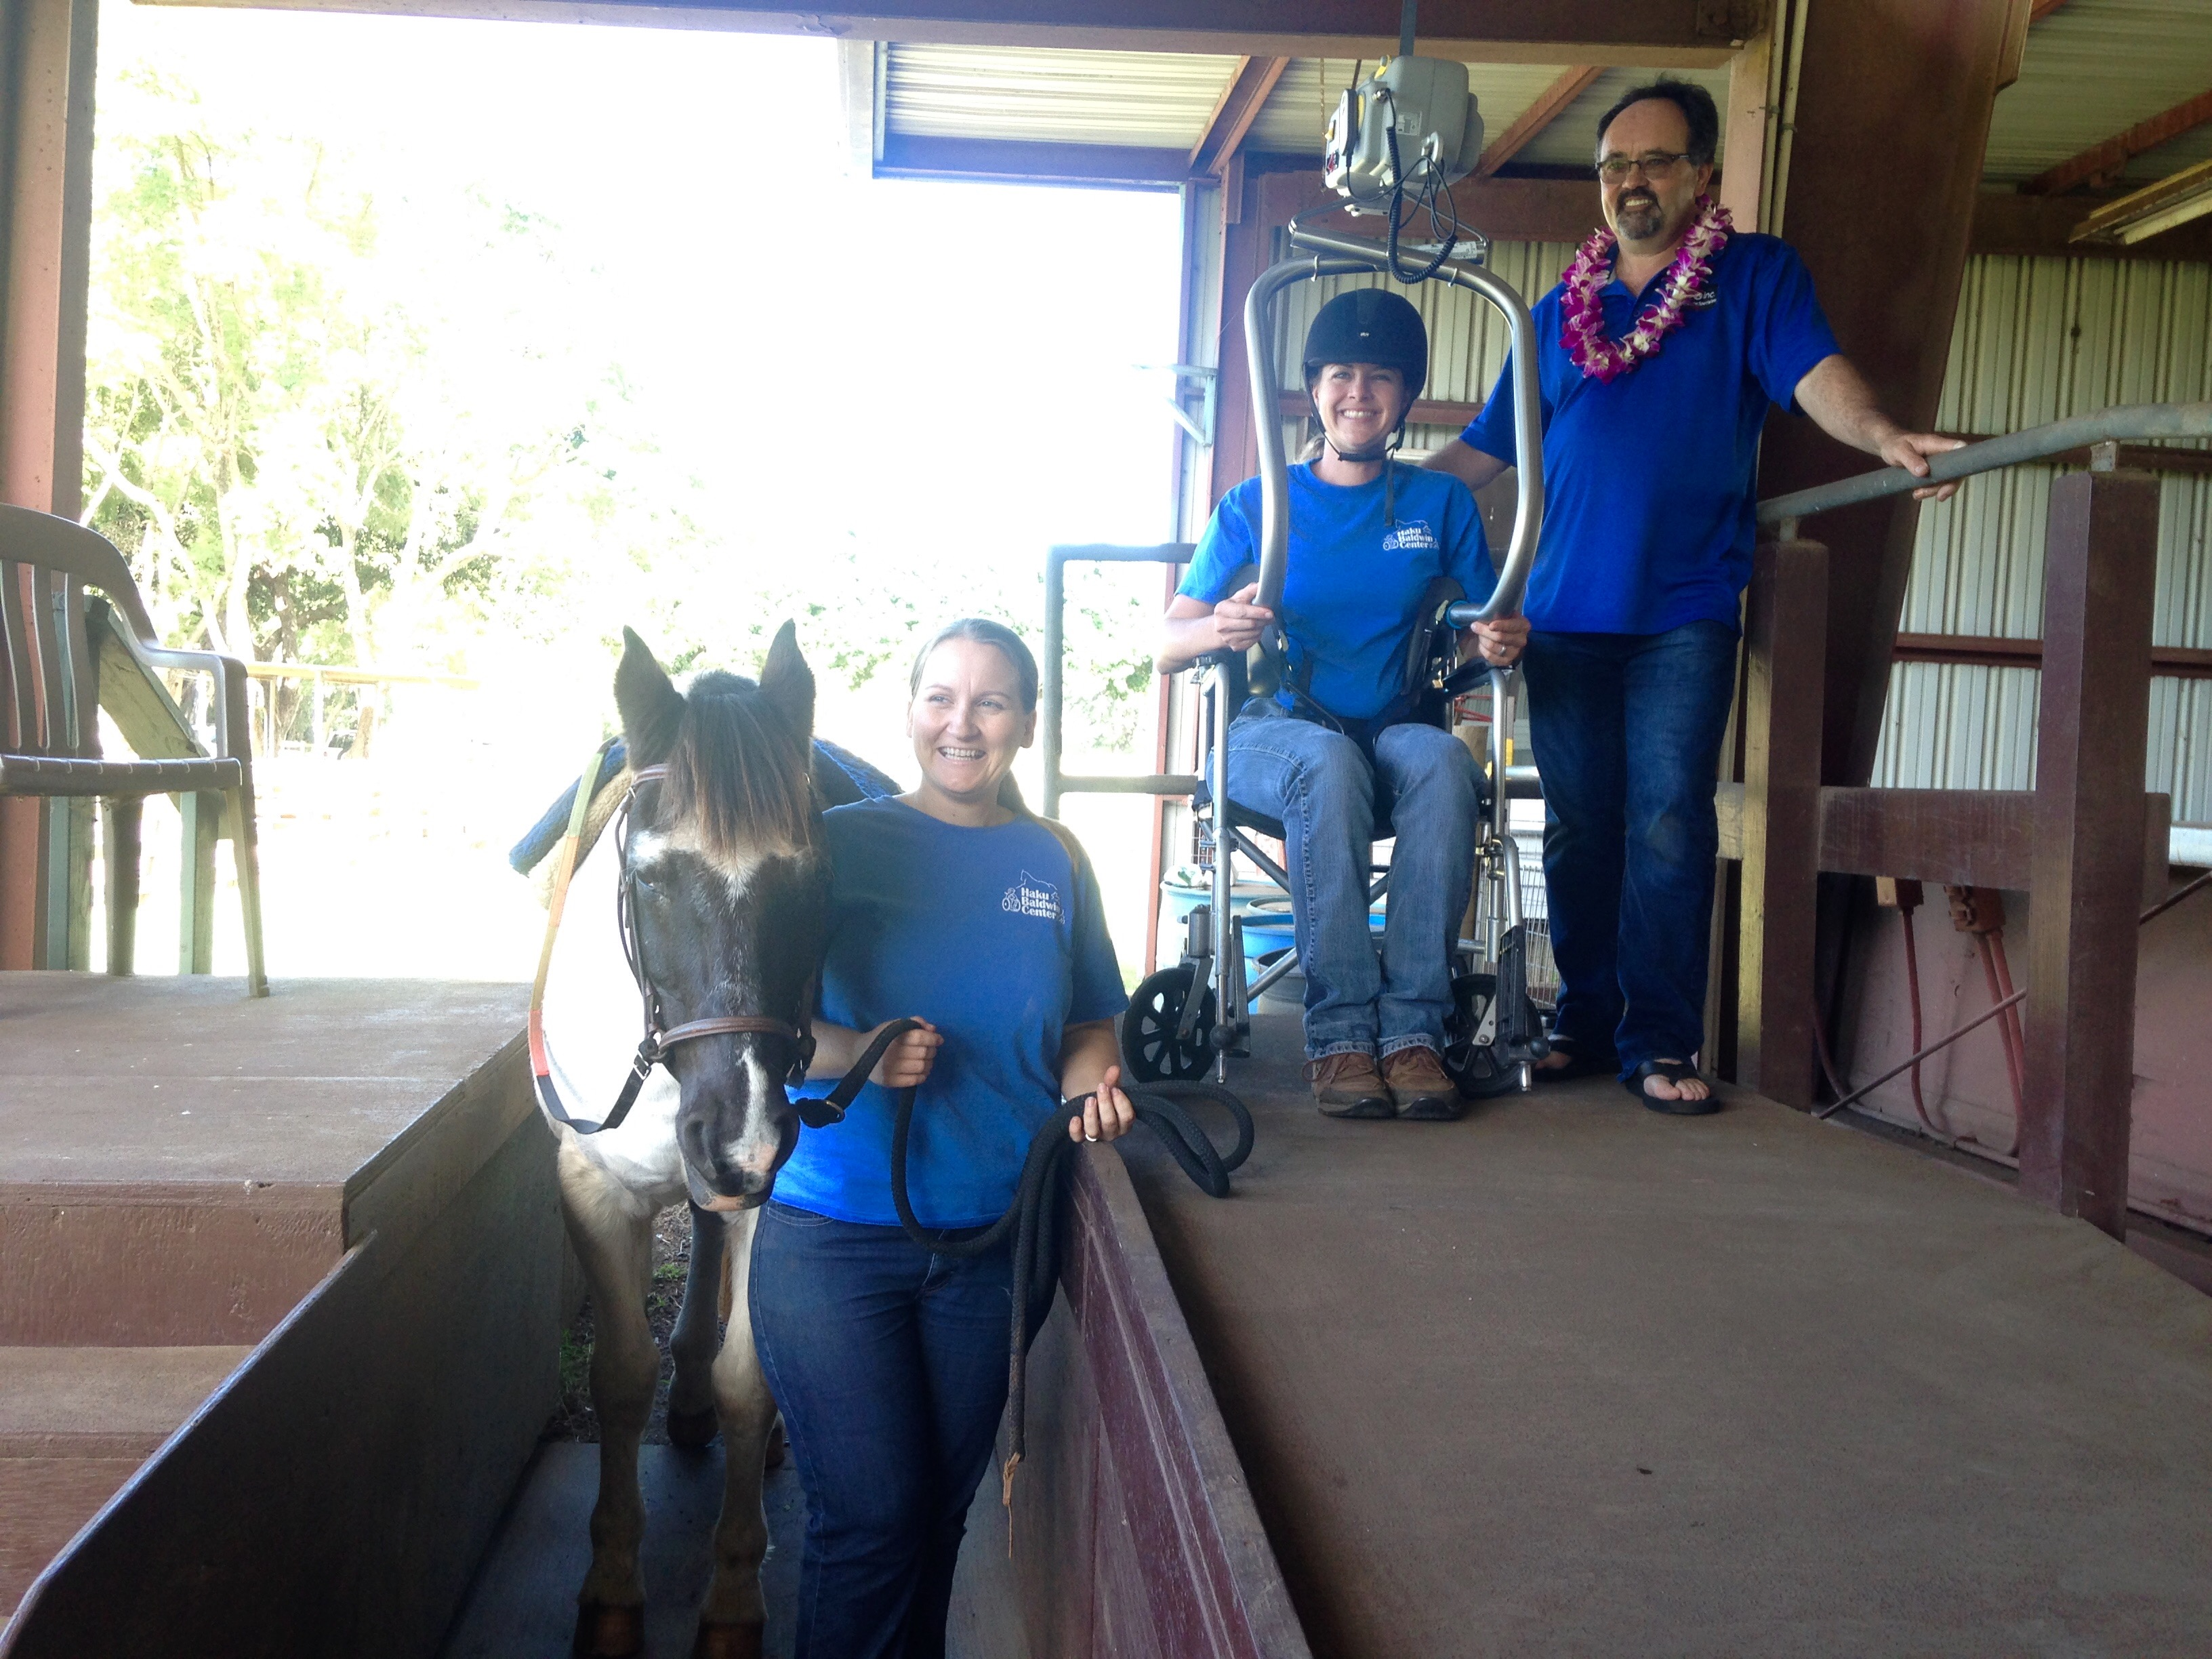 Craig Coogan (right), owner of Lift & Transfer Specialists, Inc., providing a training session for our staff on Tuesday. Shown here with Therapeutic Riding Program Director, Sarah Lyons (middle), Assistant Director, Chrissy Stout (left), and therapy horse, Apache.